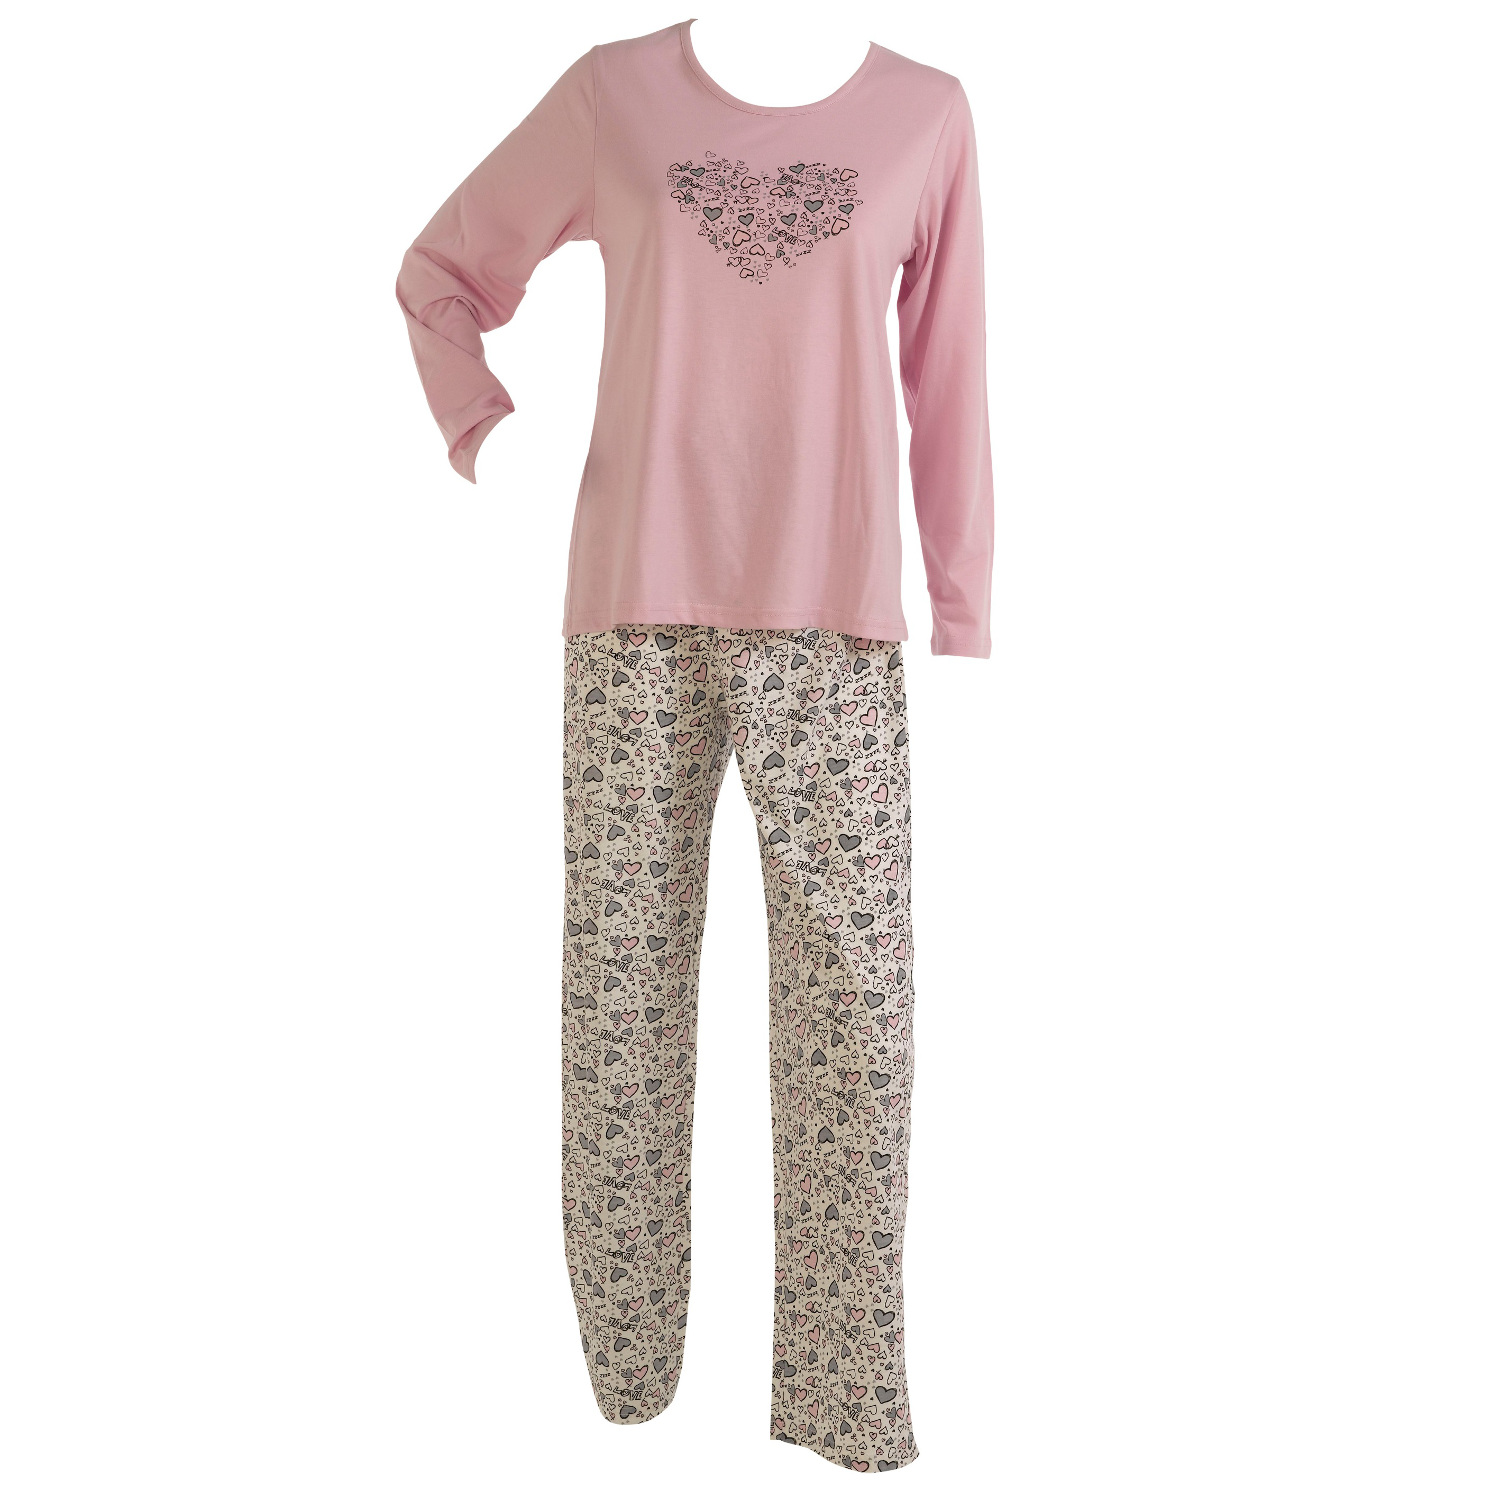 love heart print ladies pjs set slenderella gaspe